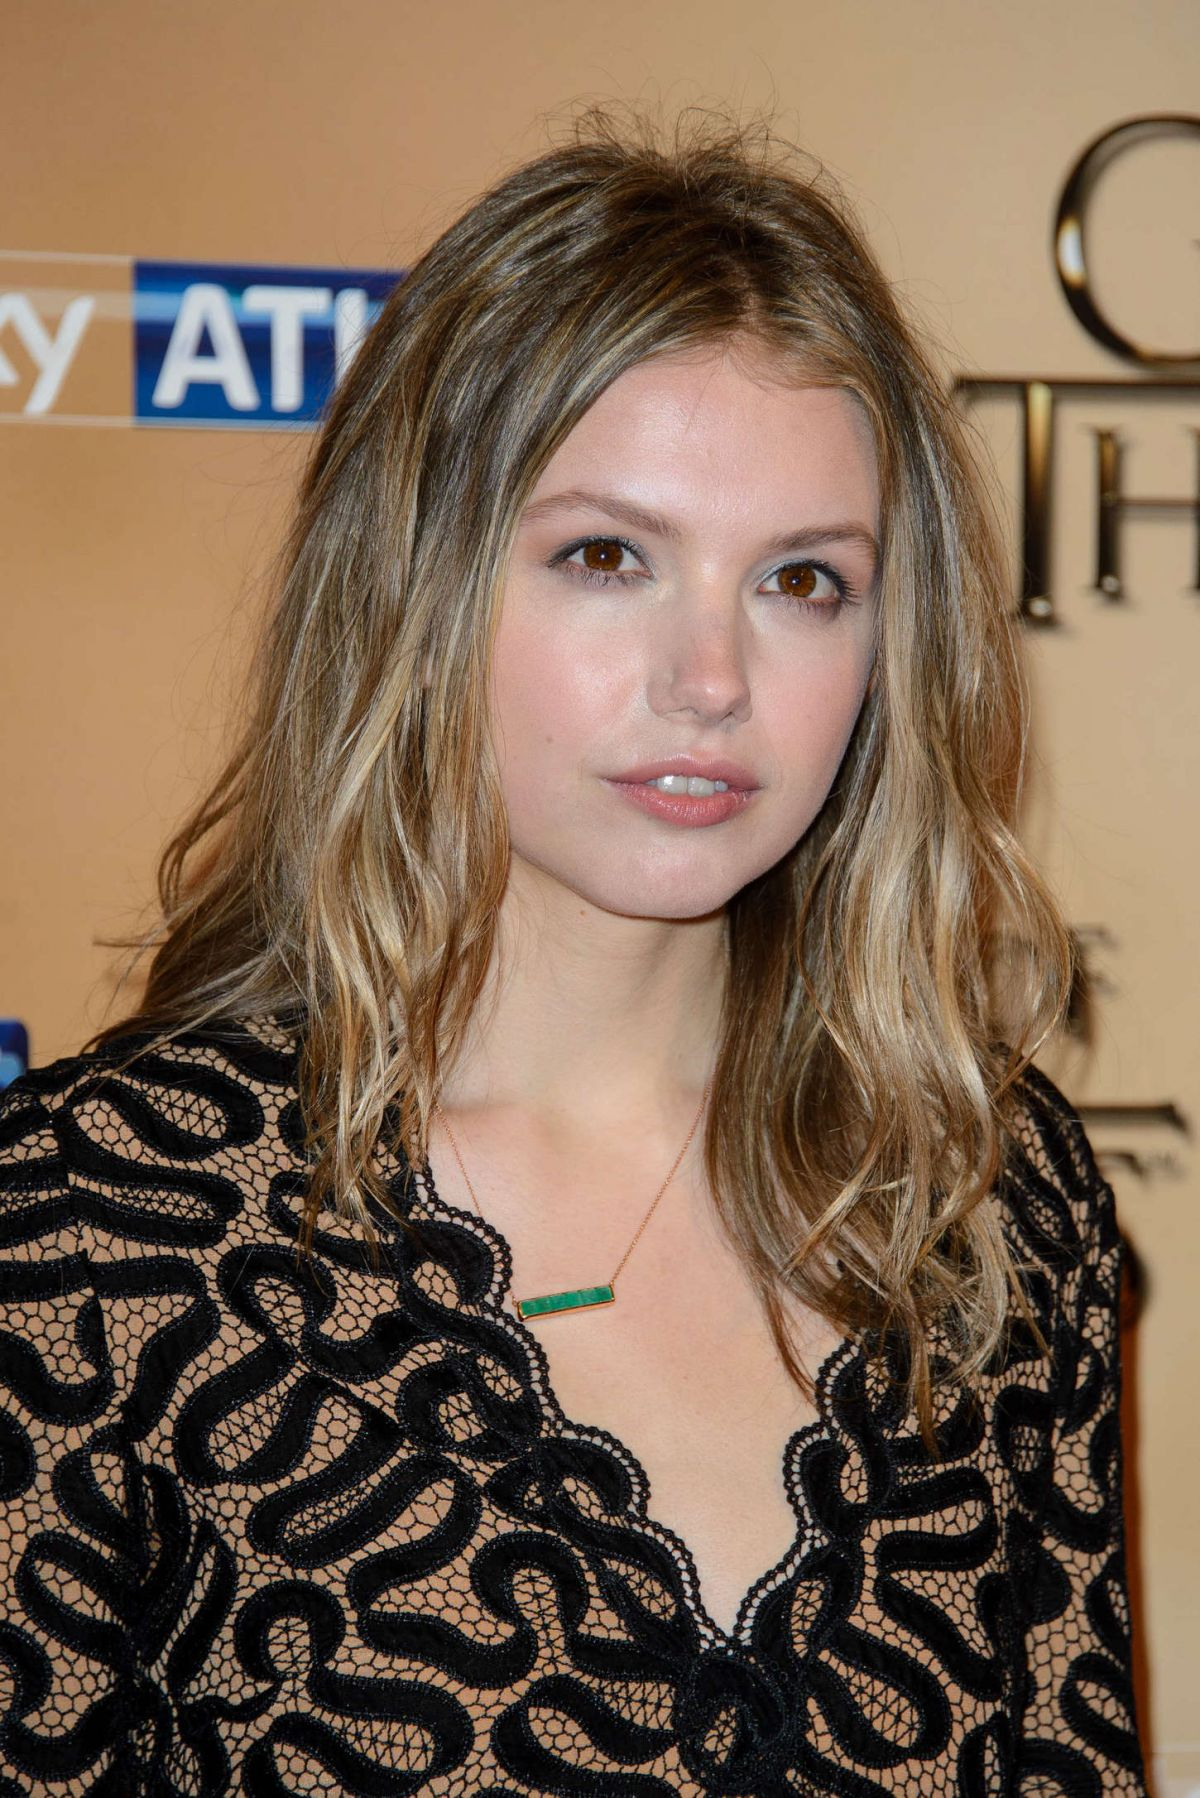 Paparazzi Hannah Murray nude photos 2019